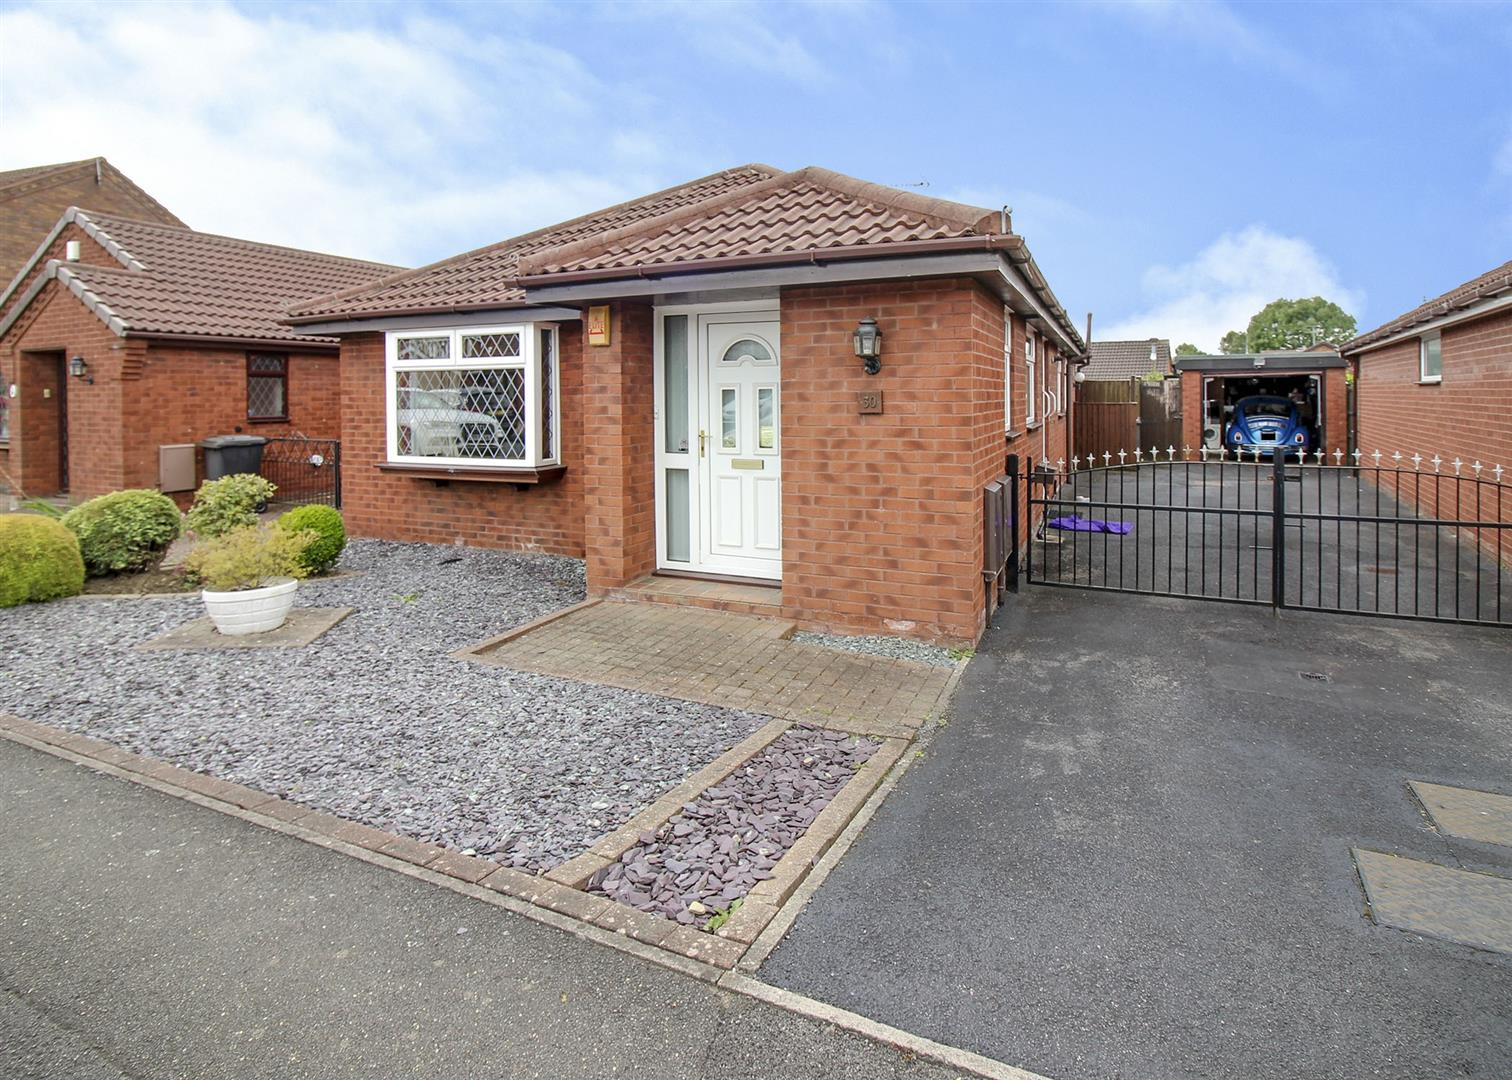 3 Bedrooms Bungalow for sale in Trowell Park Drive, Trowell, Nottingham